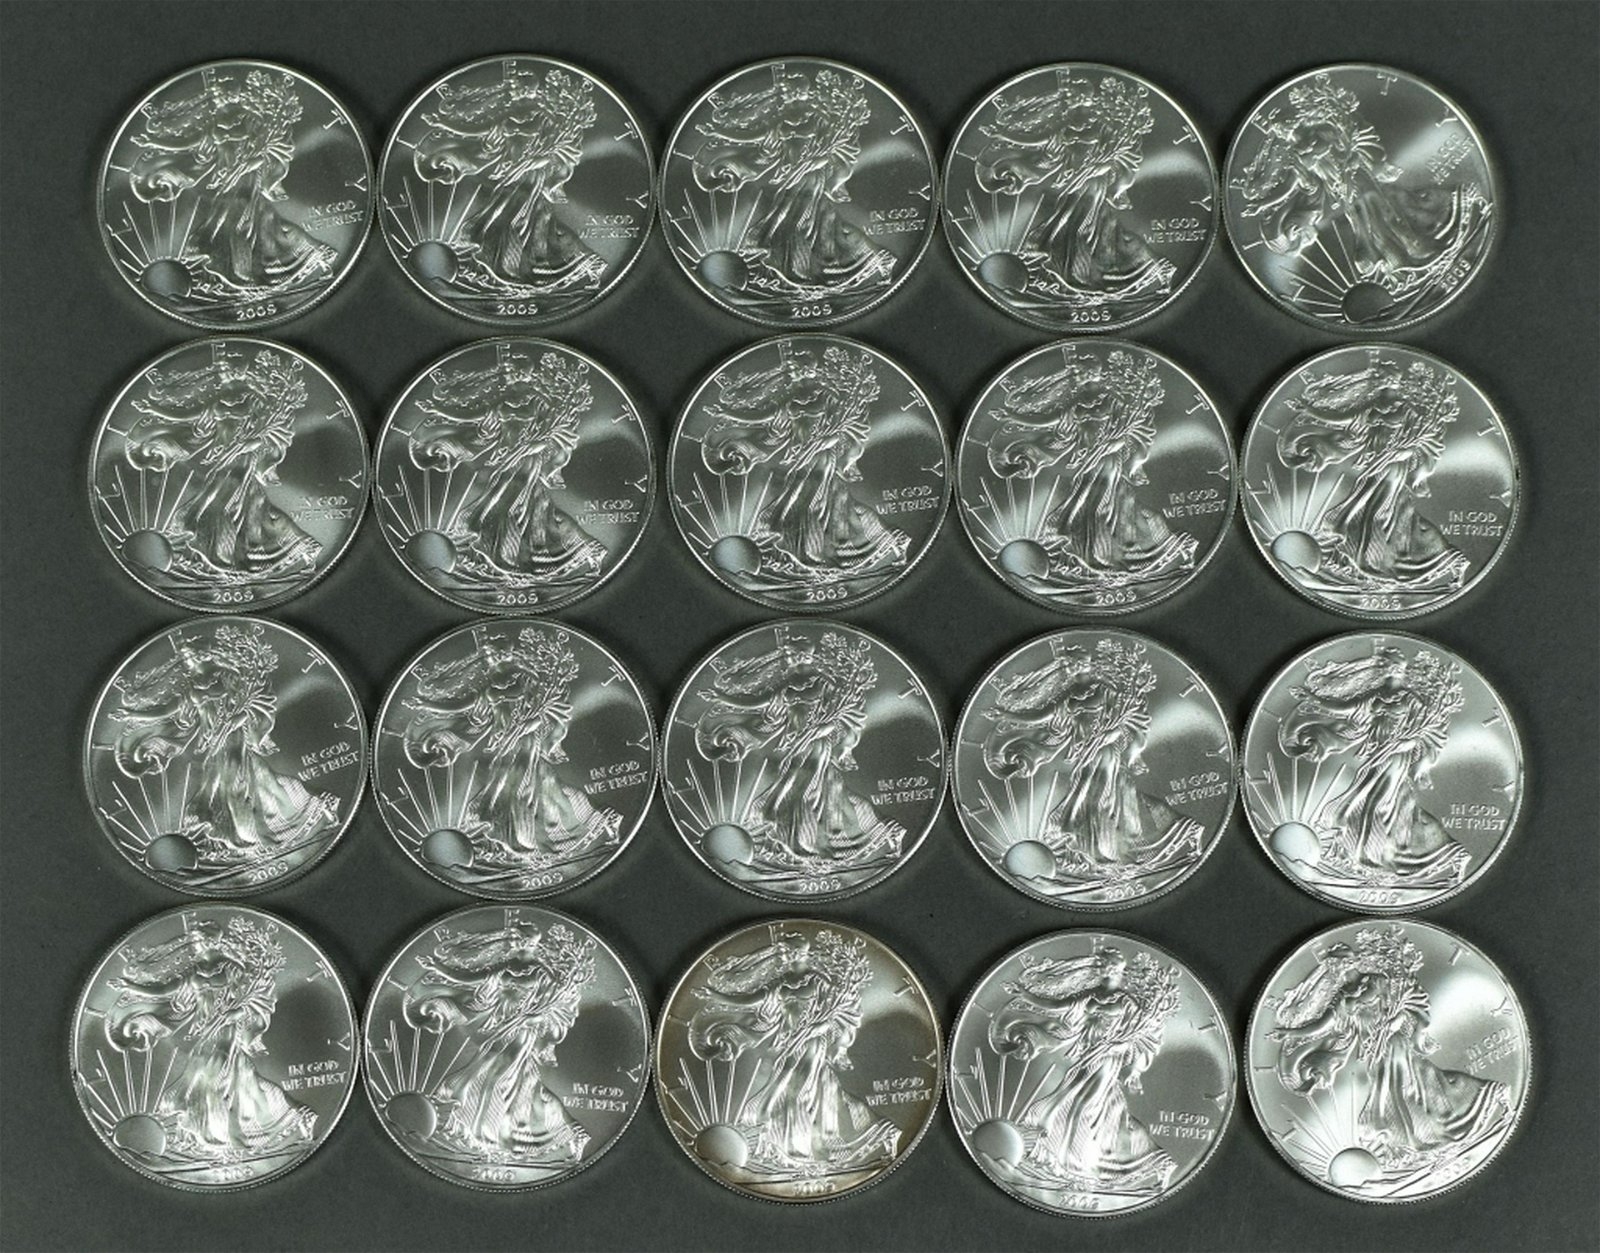 Tube of 2009 Silver Eagles